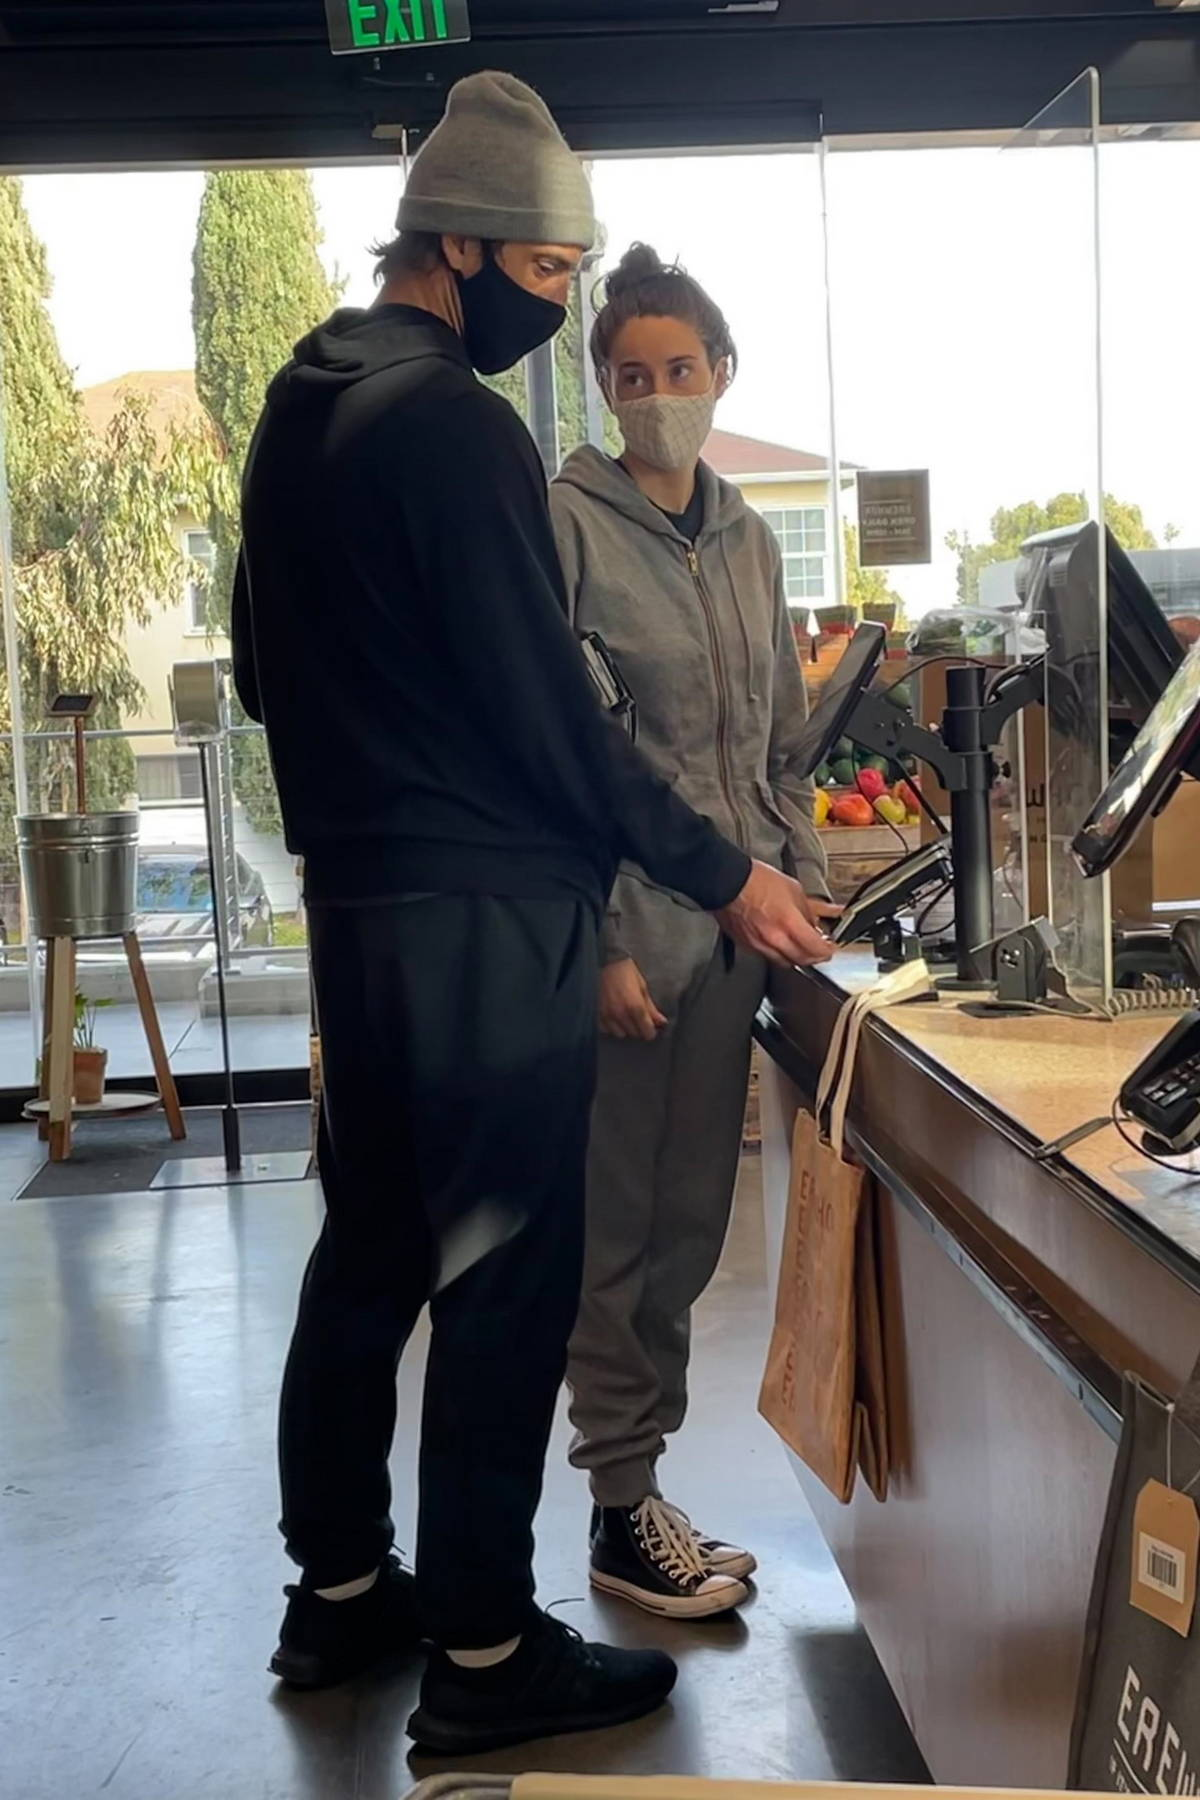 Shailene Woodley and Aaron Rodgers step out for some grocery shopping at Erewhon Market in Santa Monica, California